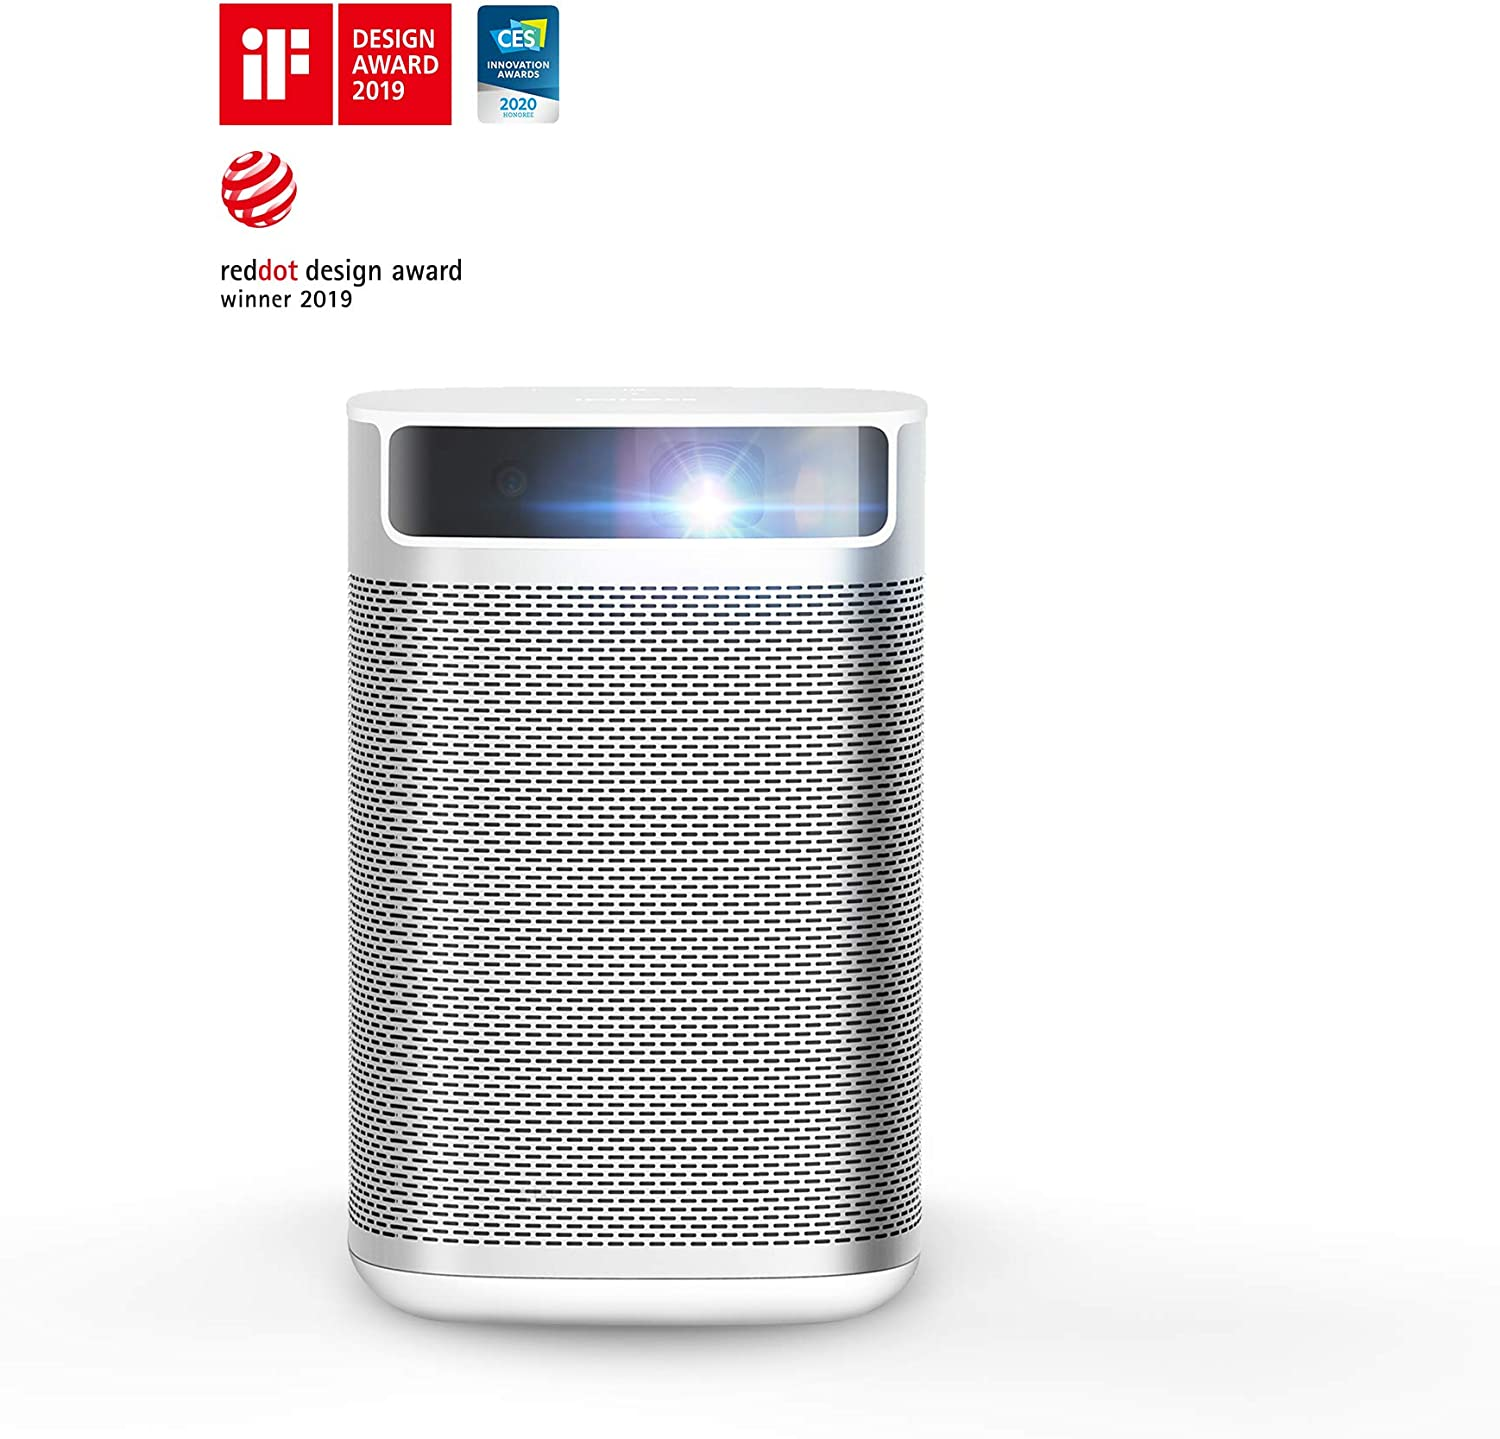 XGIMI MoGo, Smart Mini Portable Projector with Wi-Fi Bluetooth Android TV 9.0 5000+ Native apps, Harman/Kardon Speakers, Indoor & Outdoor Movie TV ...